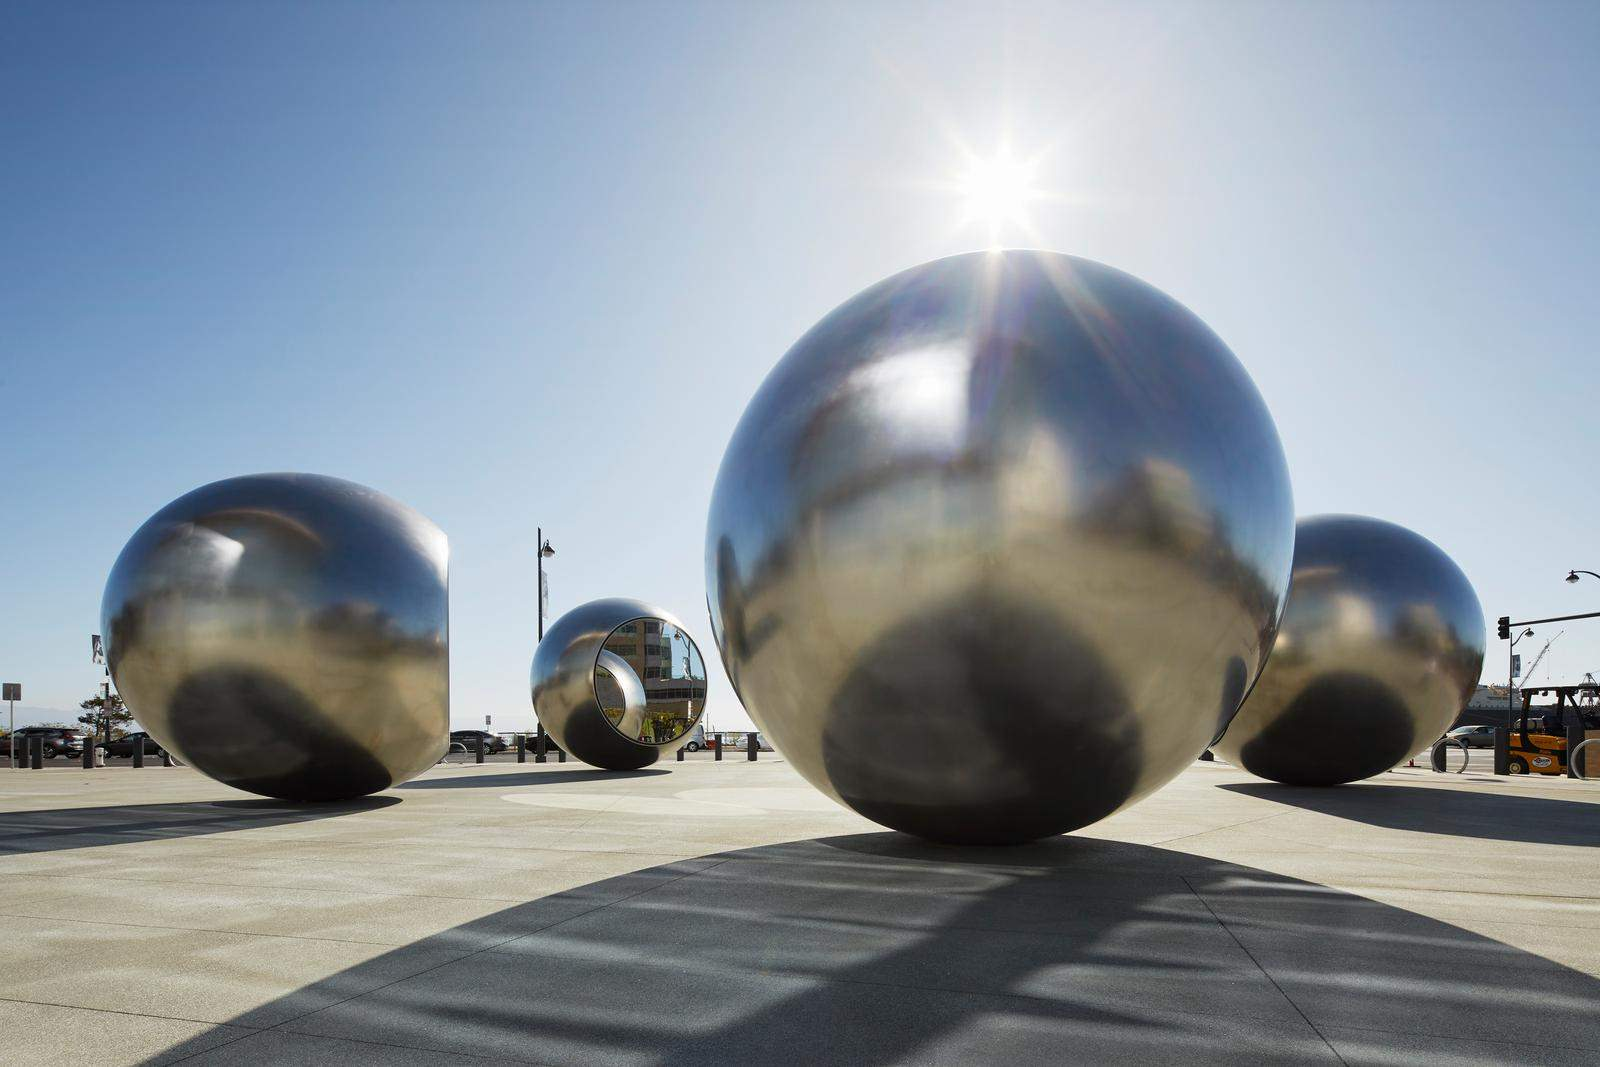 Seeing Spheres, Chase Centre, San Francisco